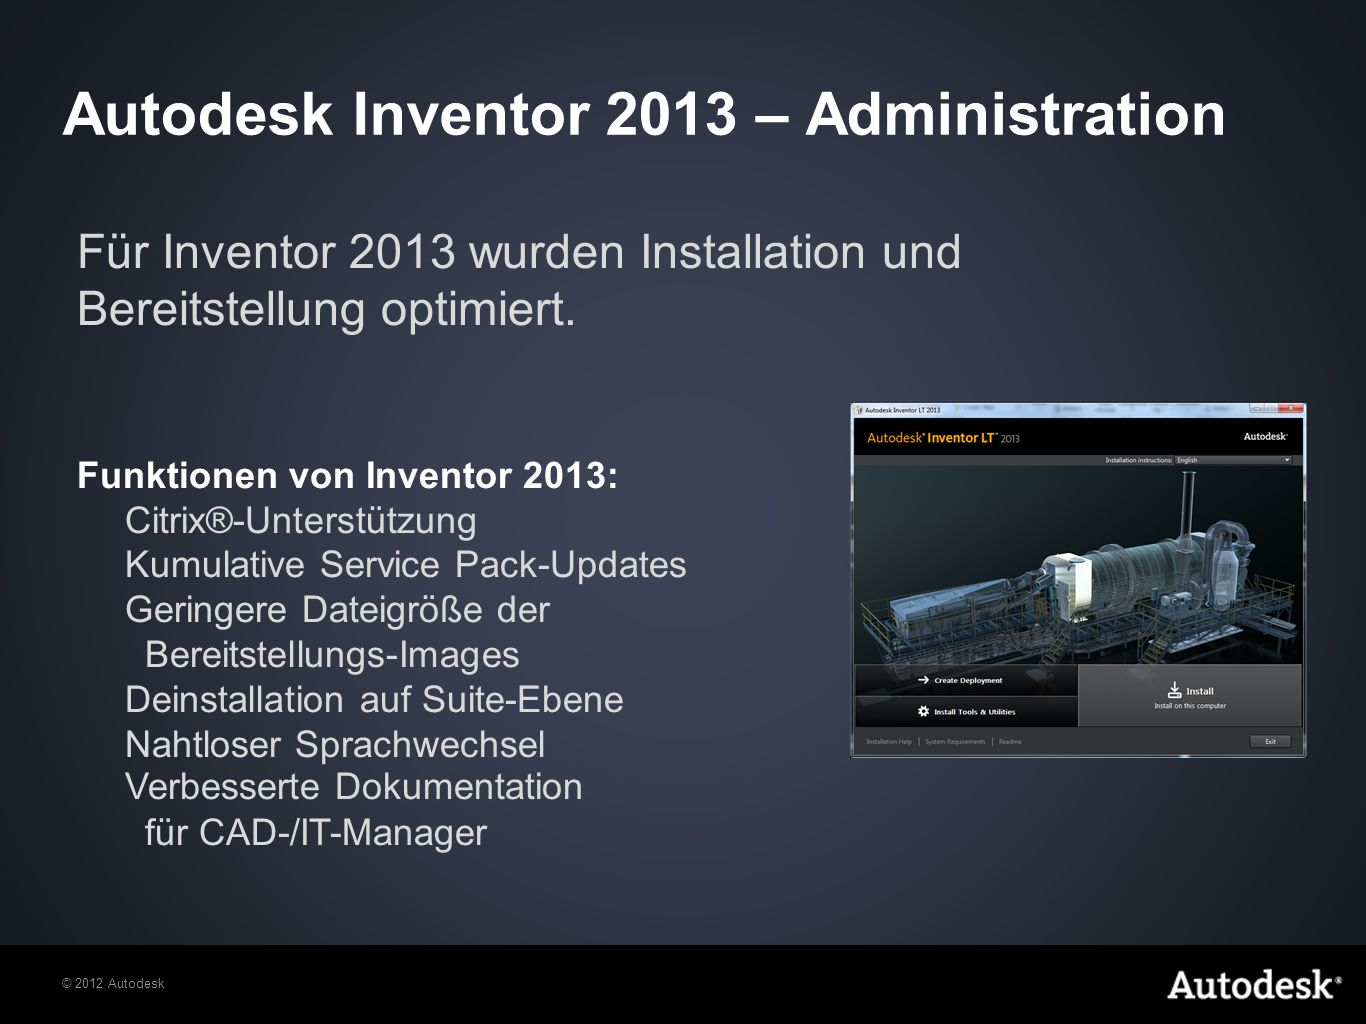 Autodesk Inventor 2013 – Administration